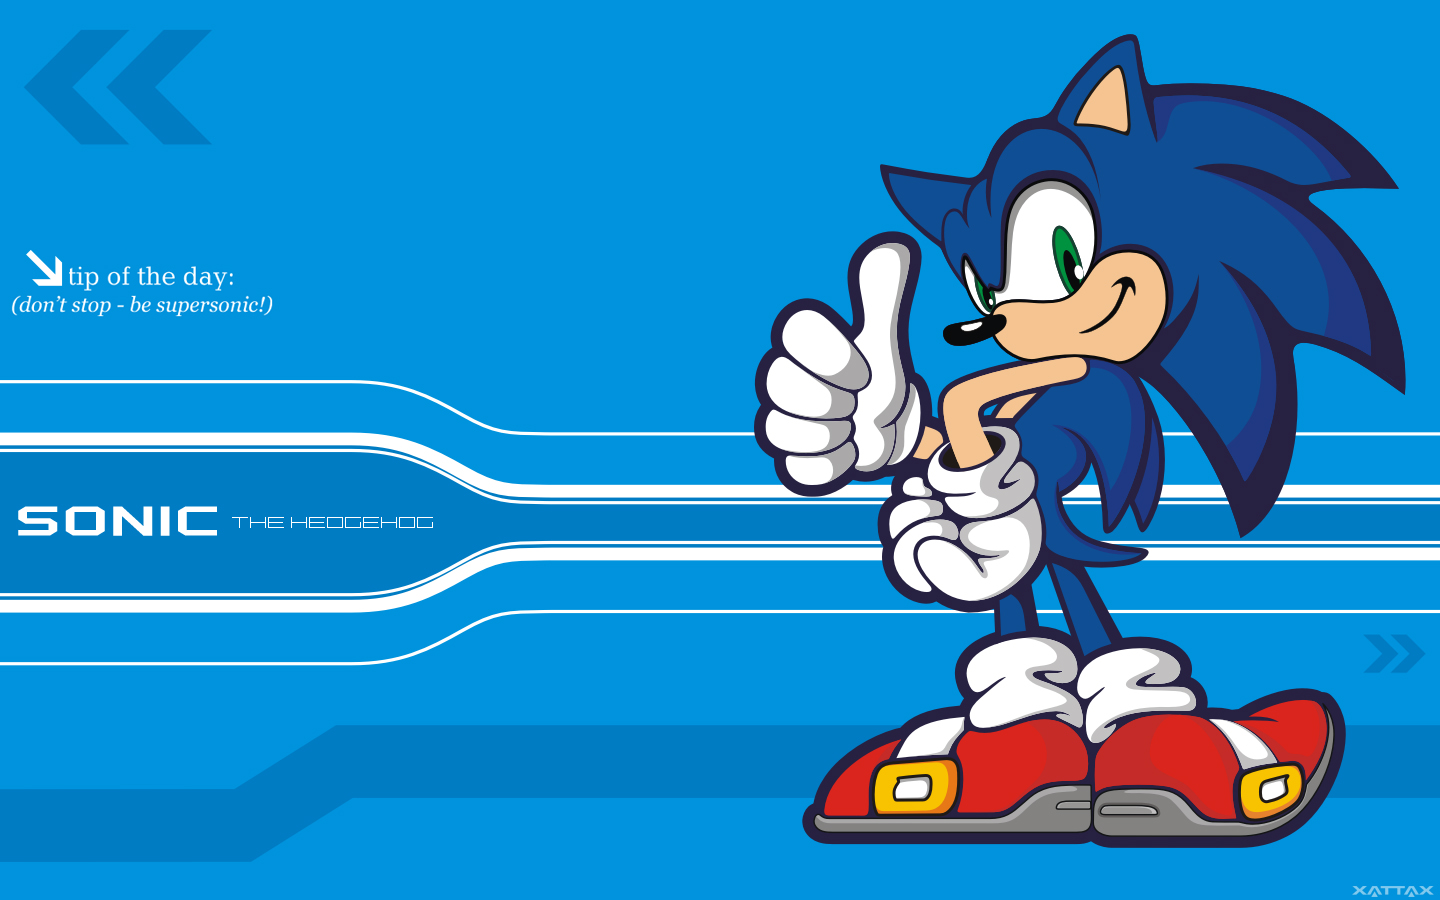 Free Download Sonic The Hedgehog Hd Wallpaper 1440x900 For Your